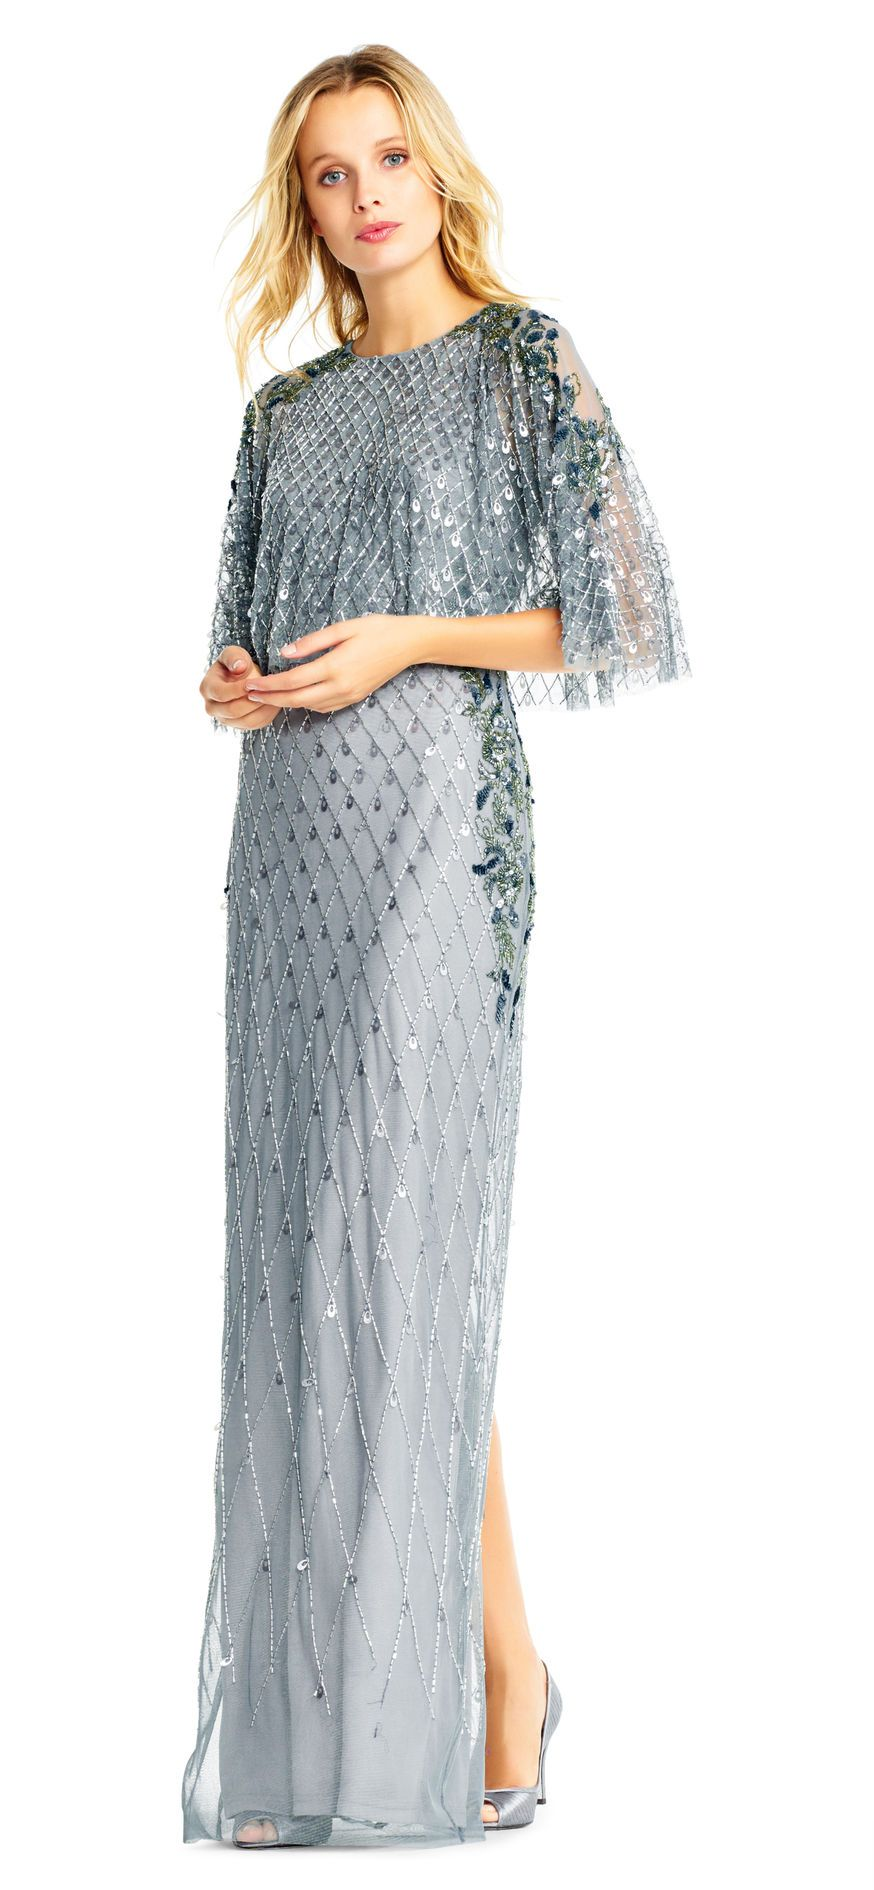 Adrianna Papell | Sequin Beaded Dress with Popover Cape Bodice | My ...